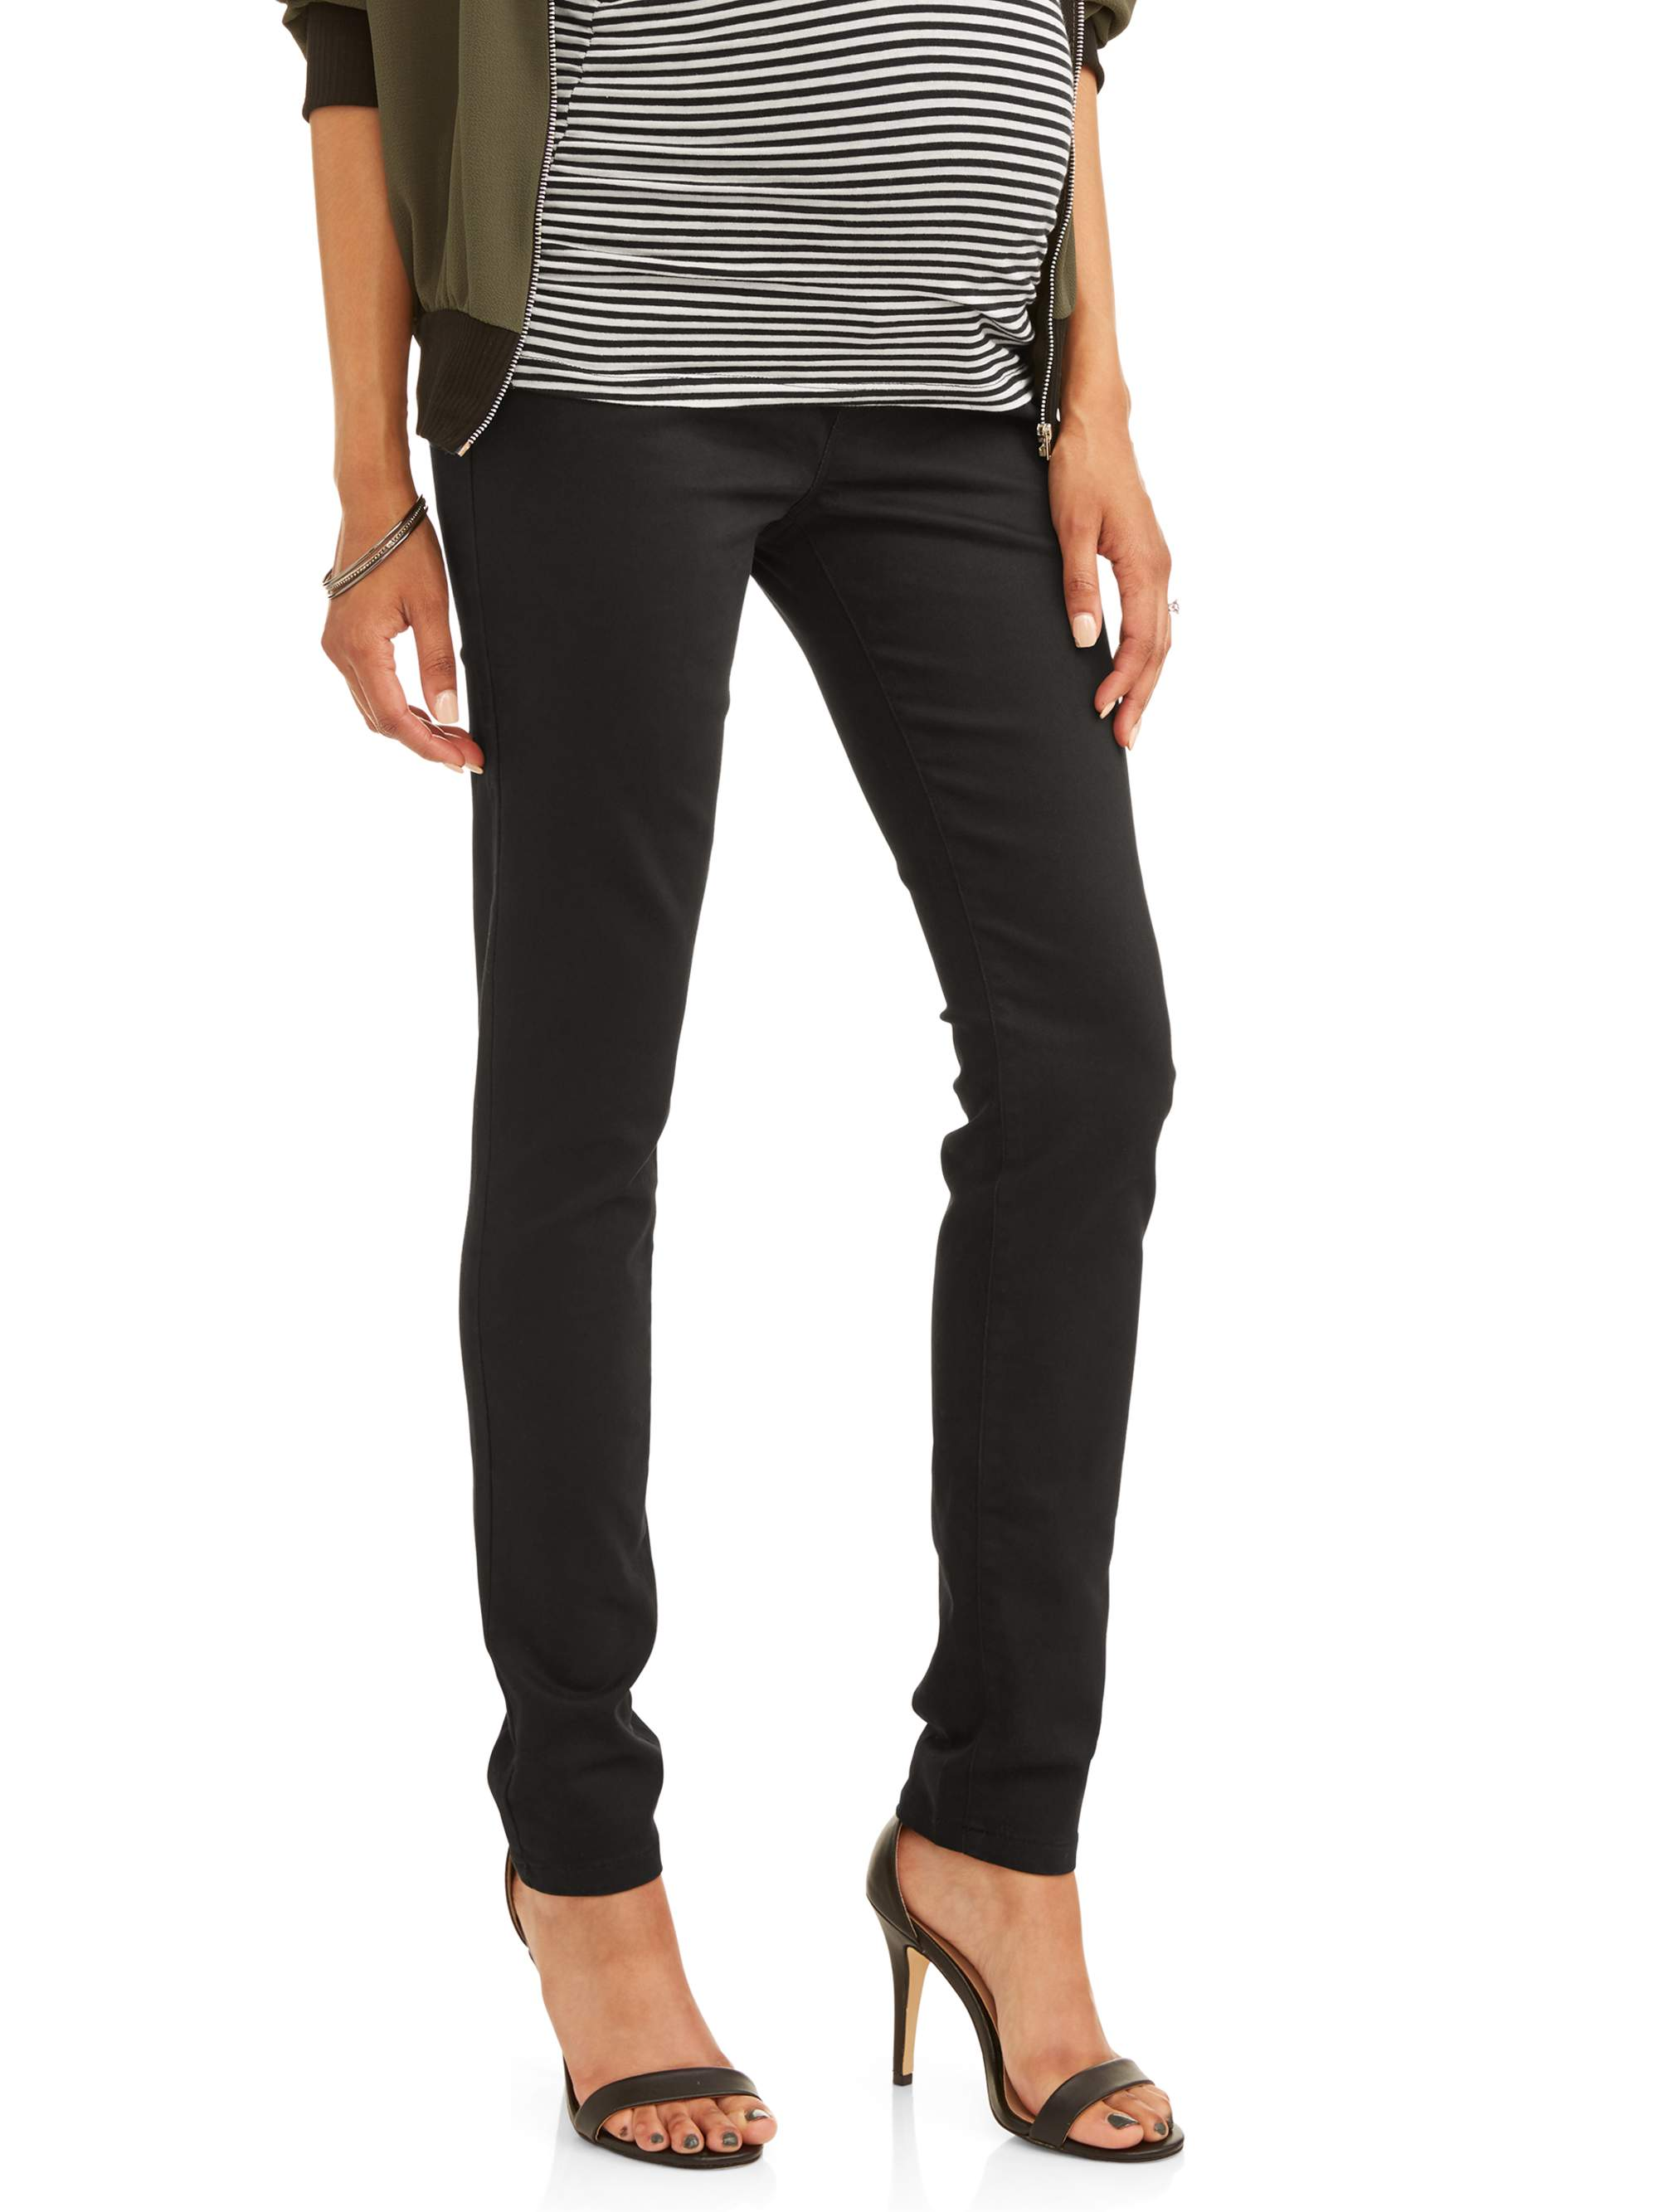 Maternity Full Paneled Skinny Jeans by Jaax